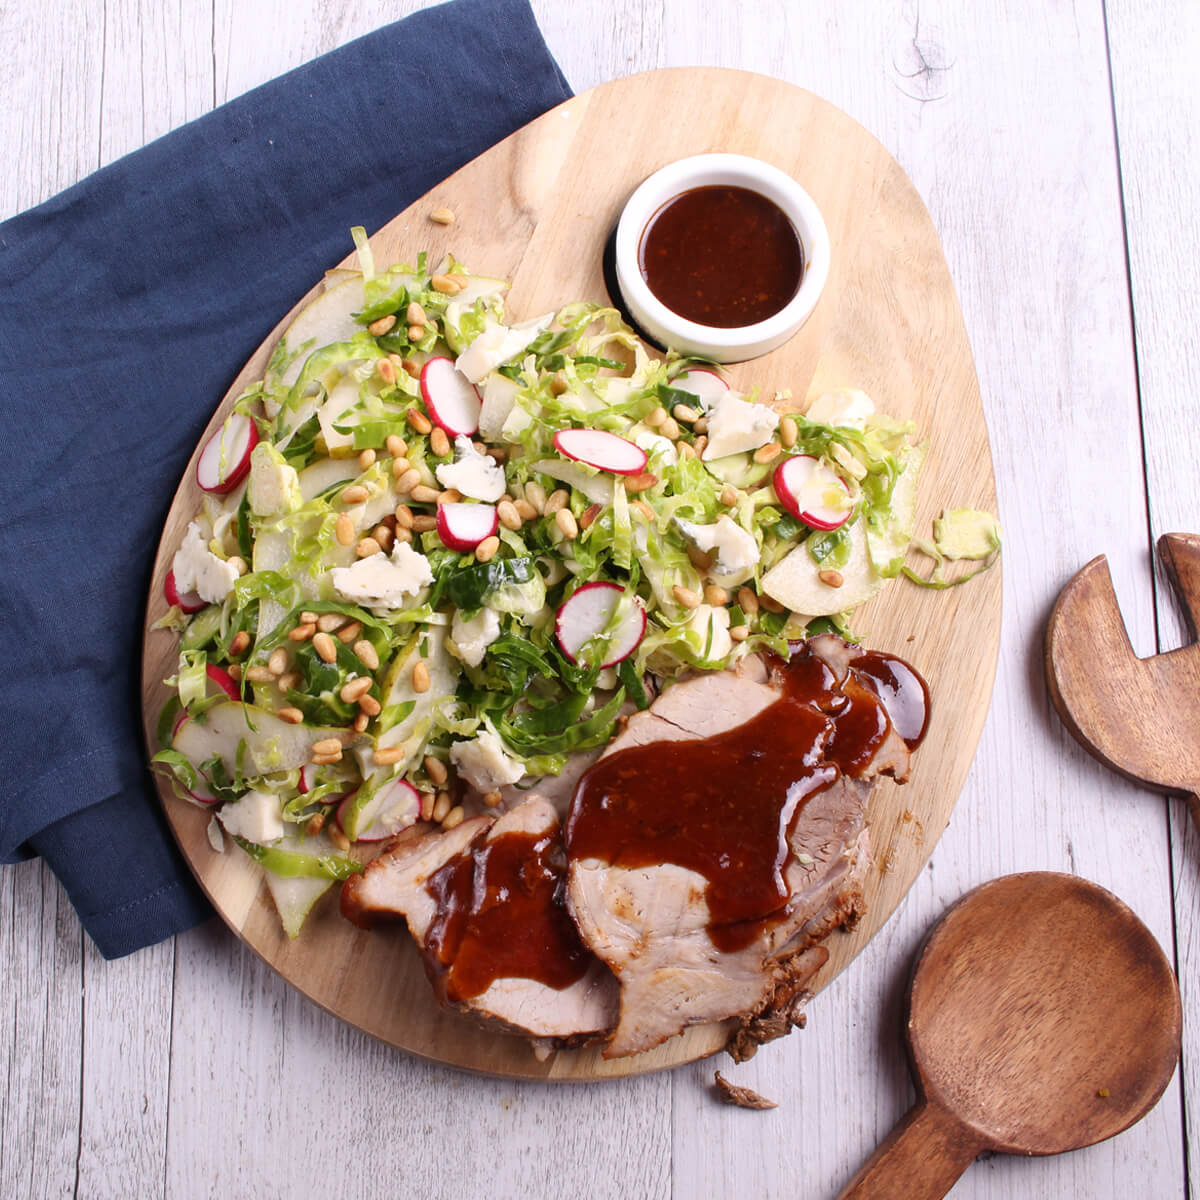 Roast with brussels sprout salad- - Forequarter roast